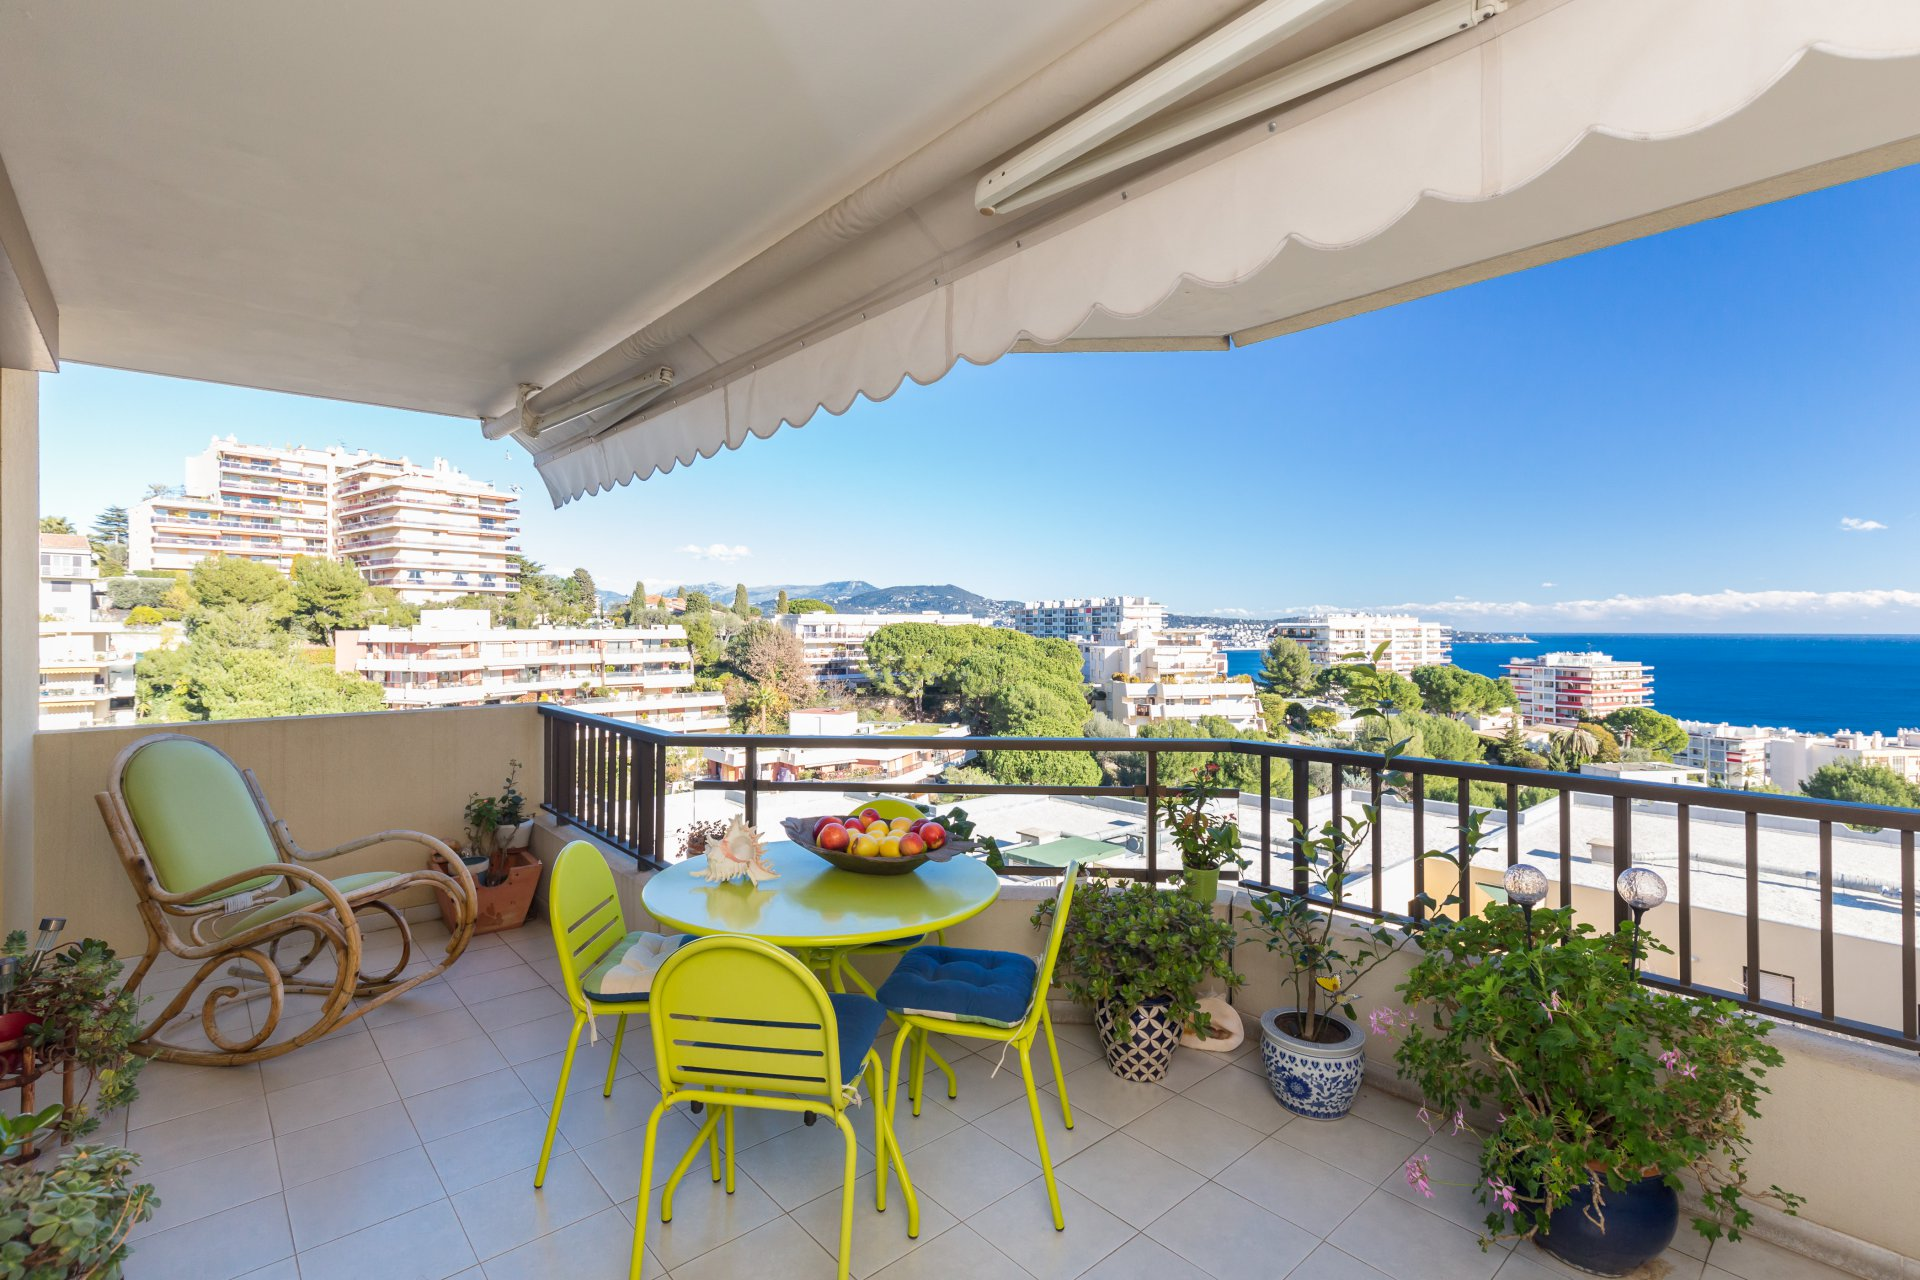 NICE OUEST / FABRON  - 3 Bedrooms - Terrace Panoramic View - 495 000 Euros